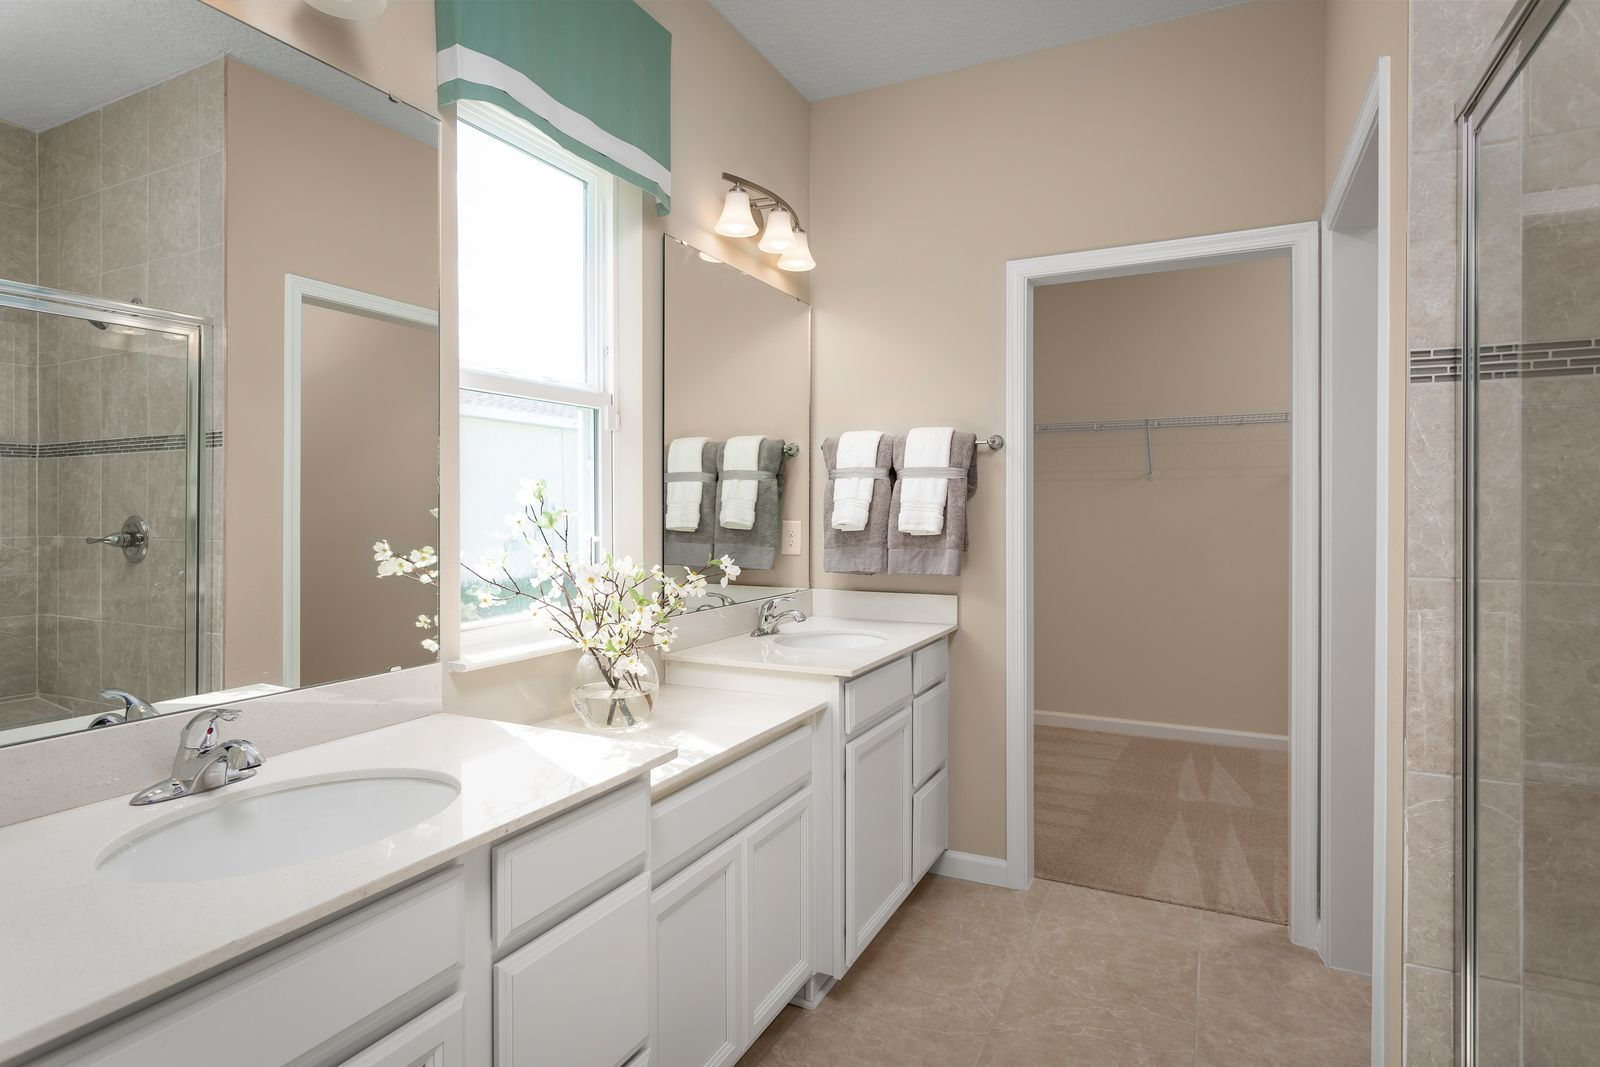 Bathroom featured in the Panama By Ryan Homes in Orlando, FL